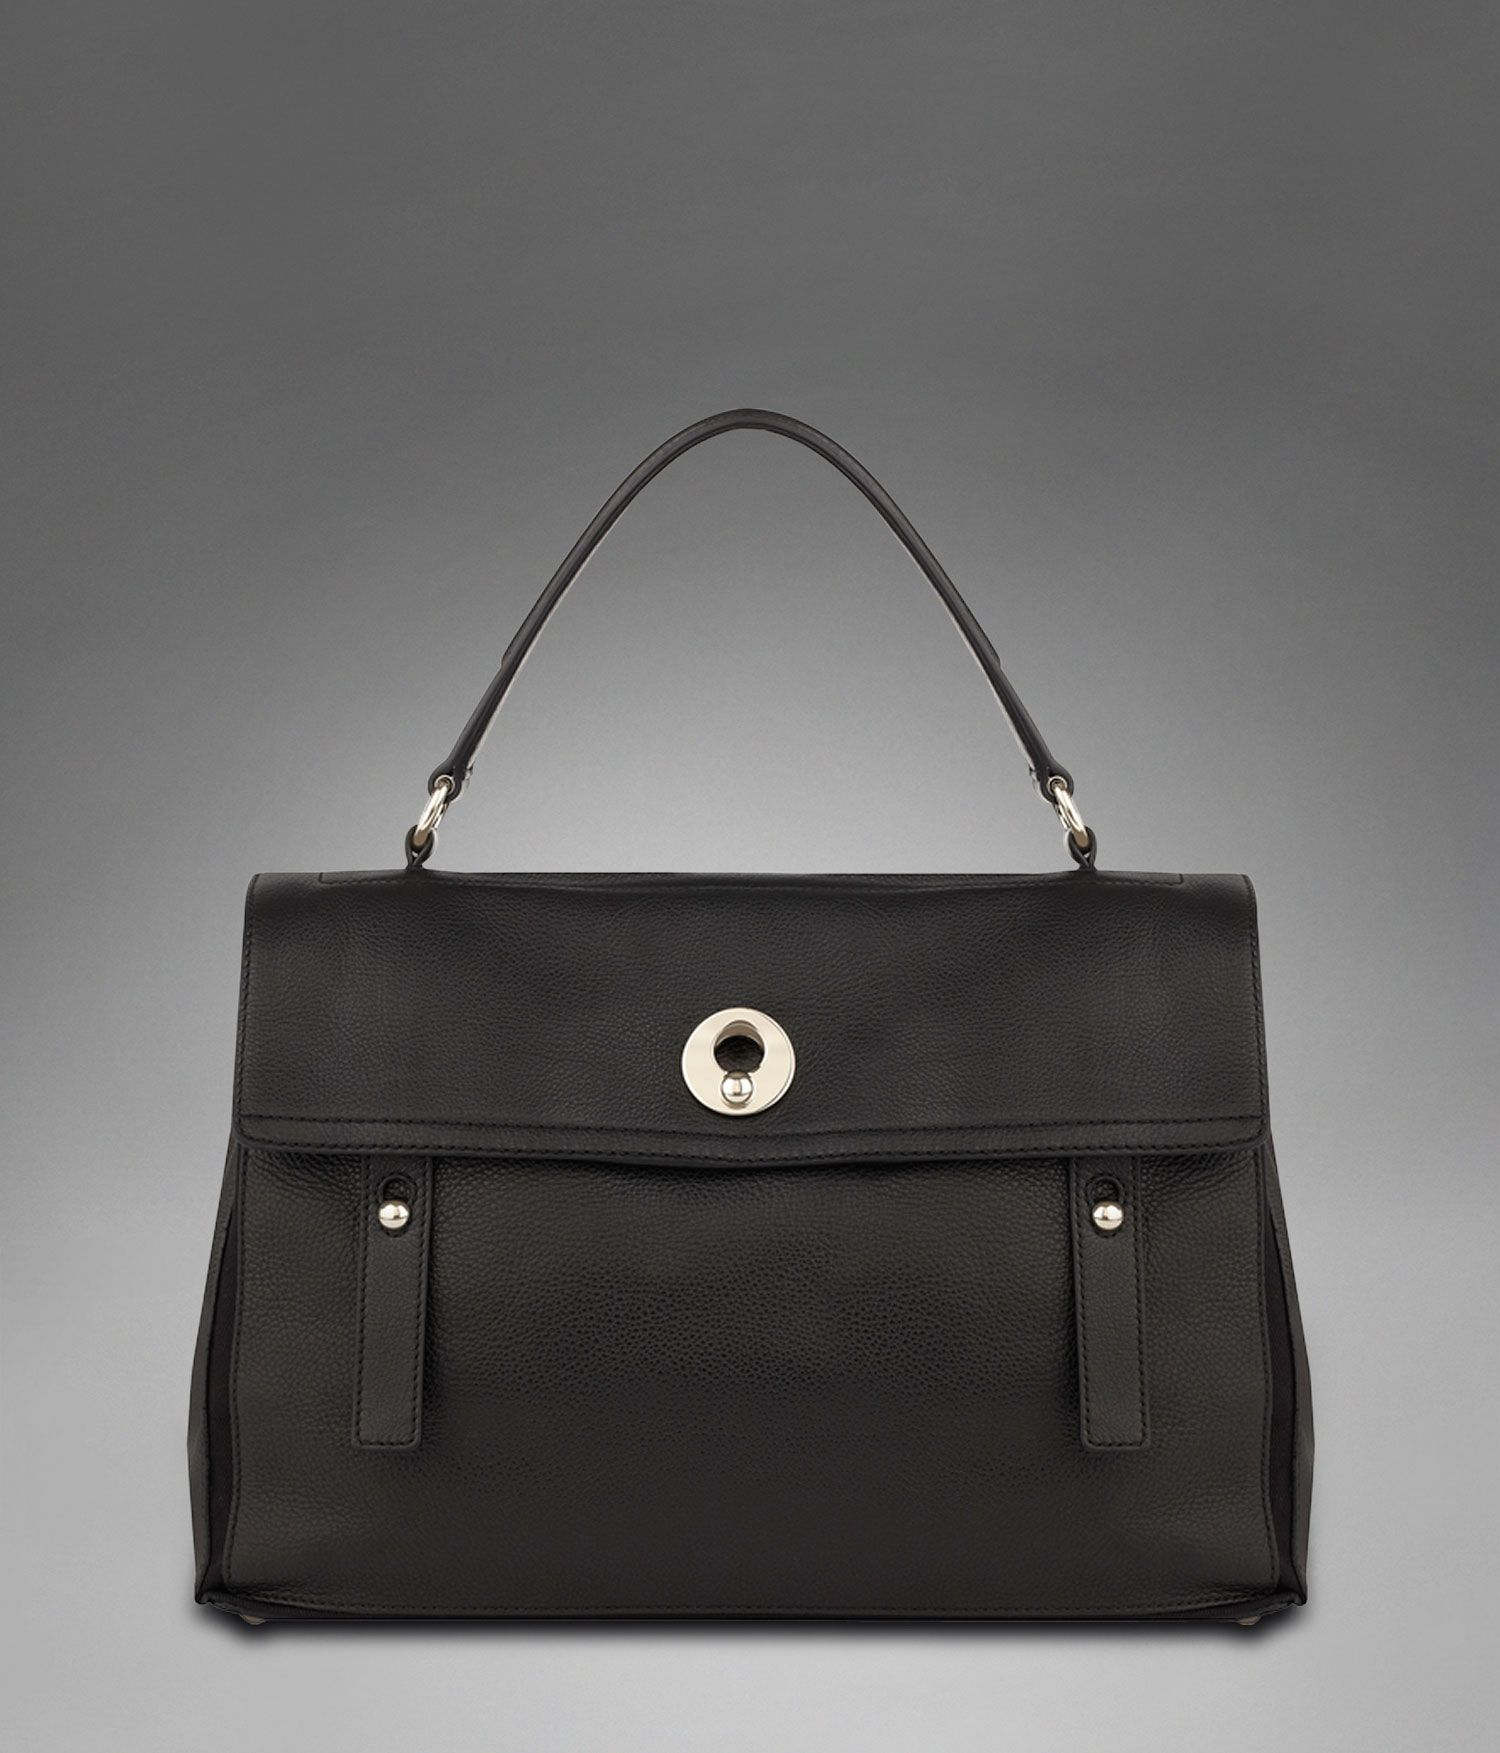 Graduation Gift ? #YSL #MuseTwo